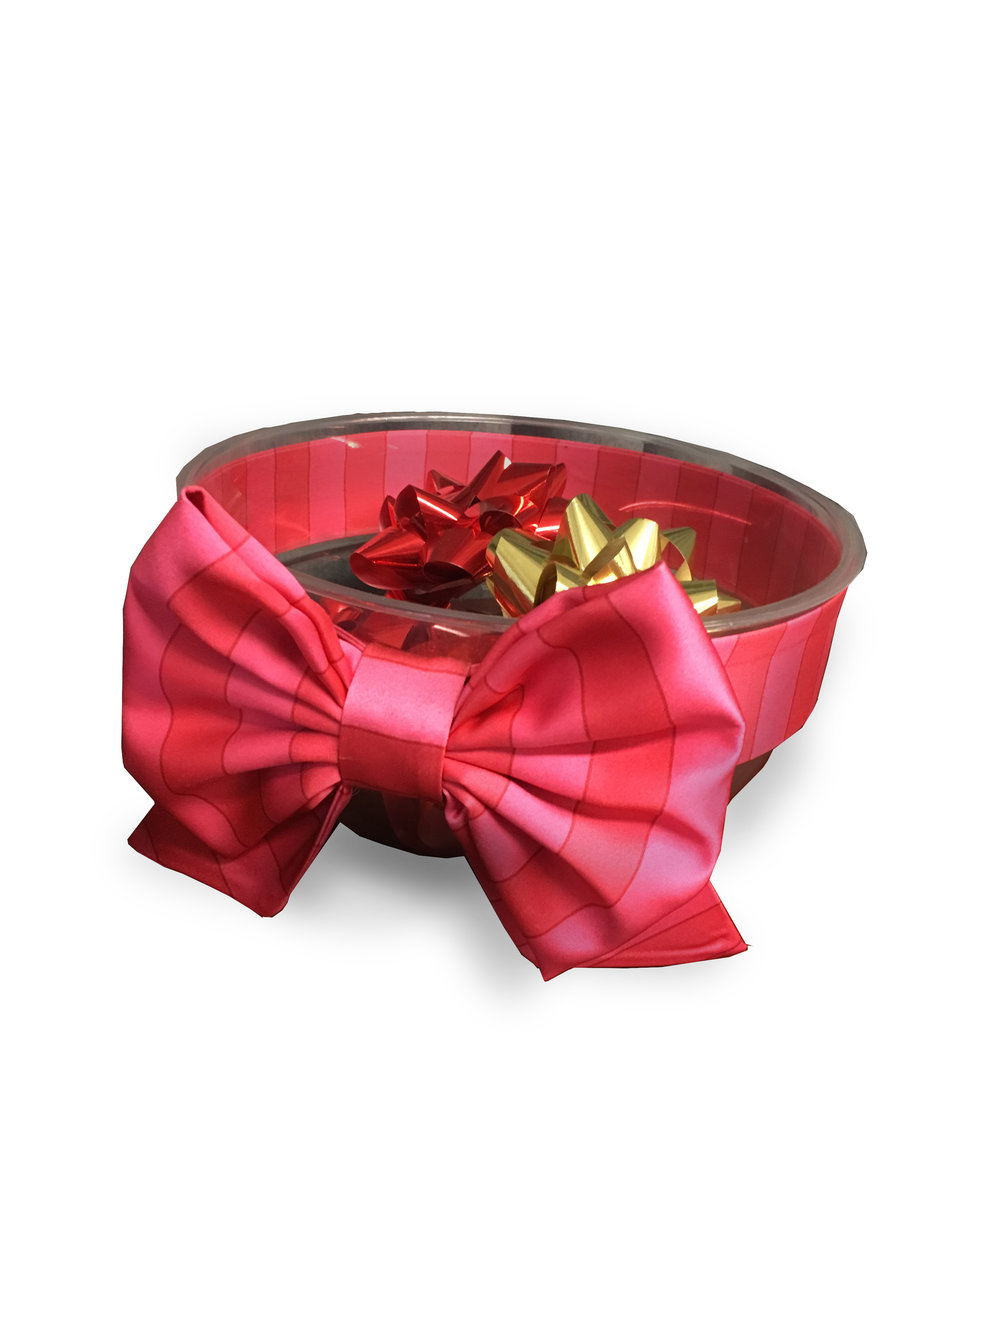 Custom Printed Ribbon and Pre-Tied Bow to fit bowls